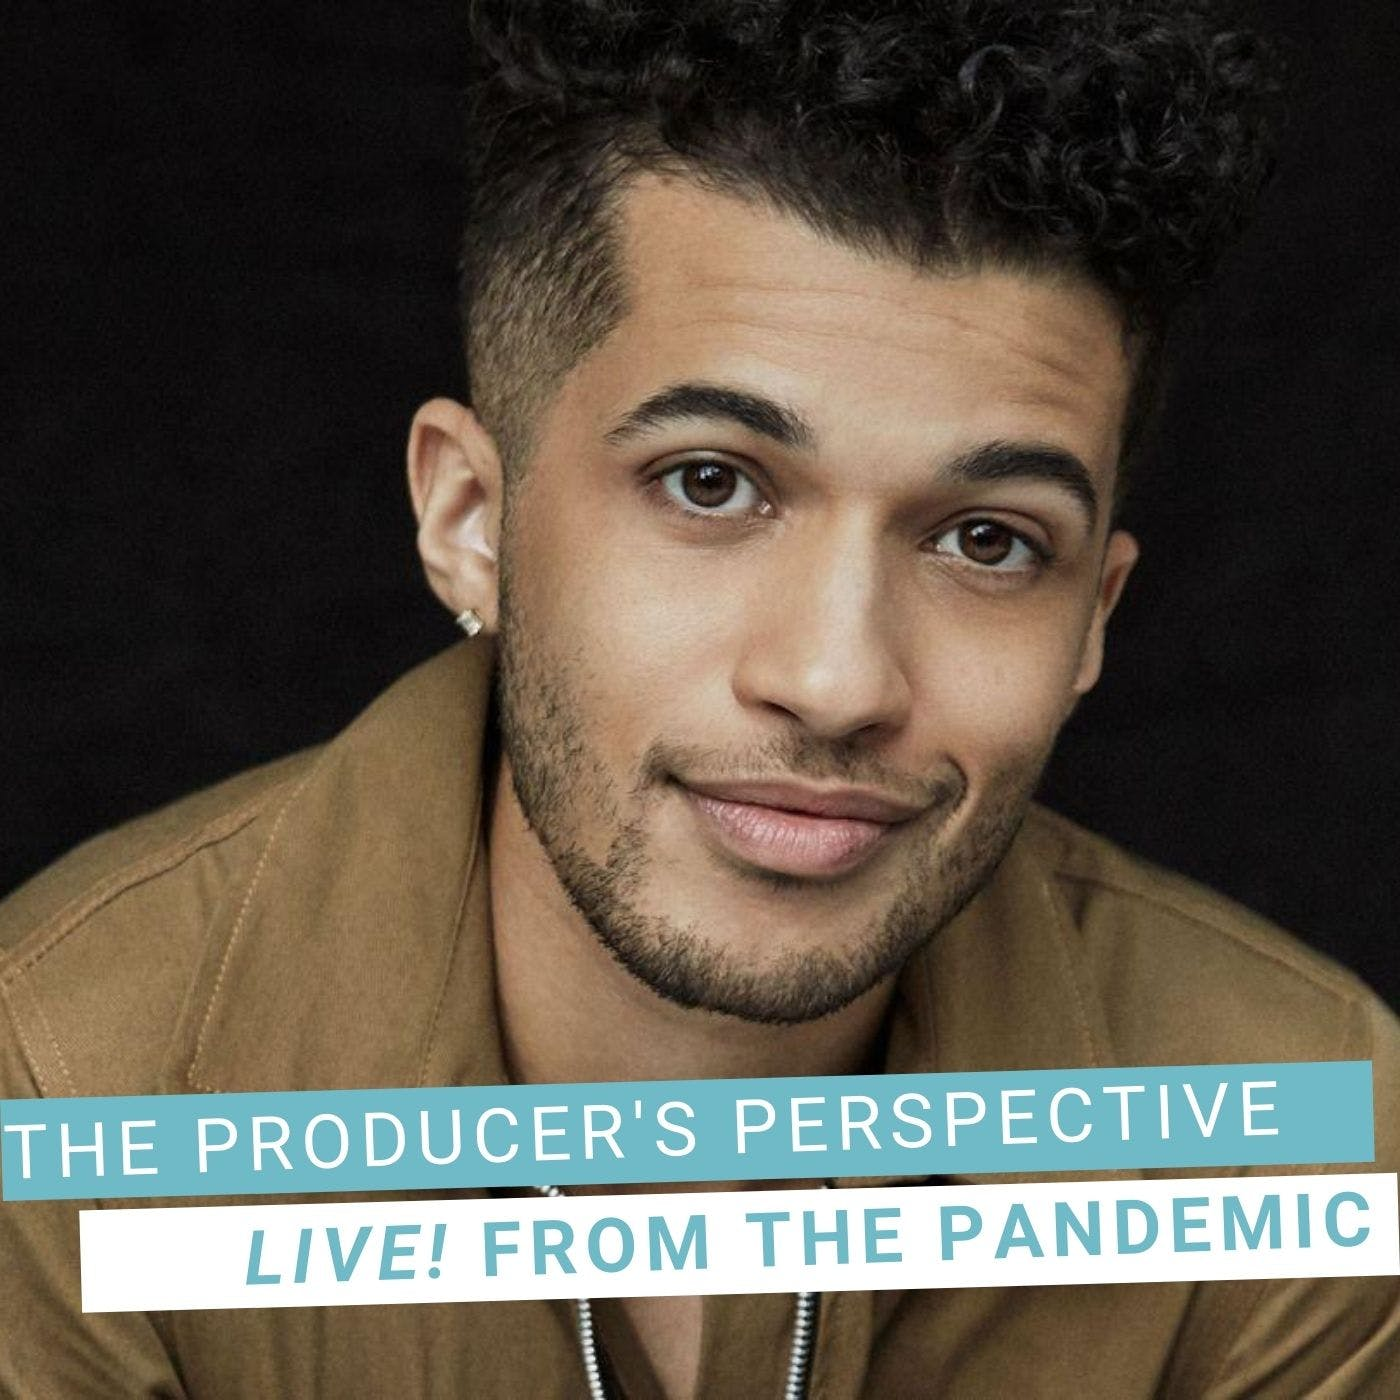 Live From The Pandemic #5: JORDAN FISHER